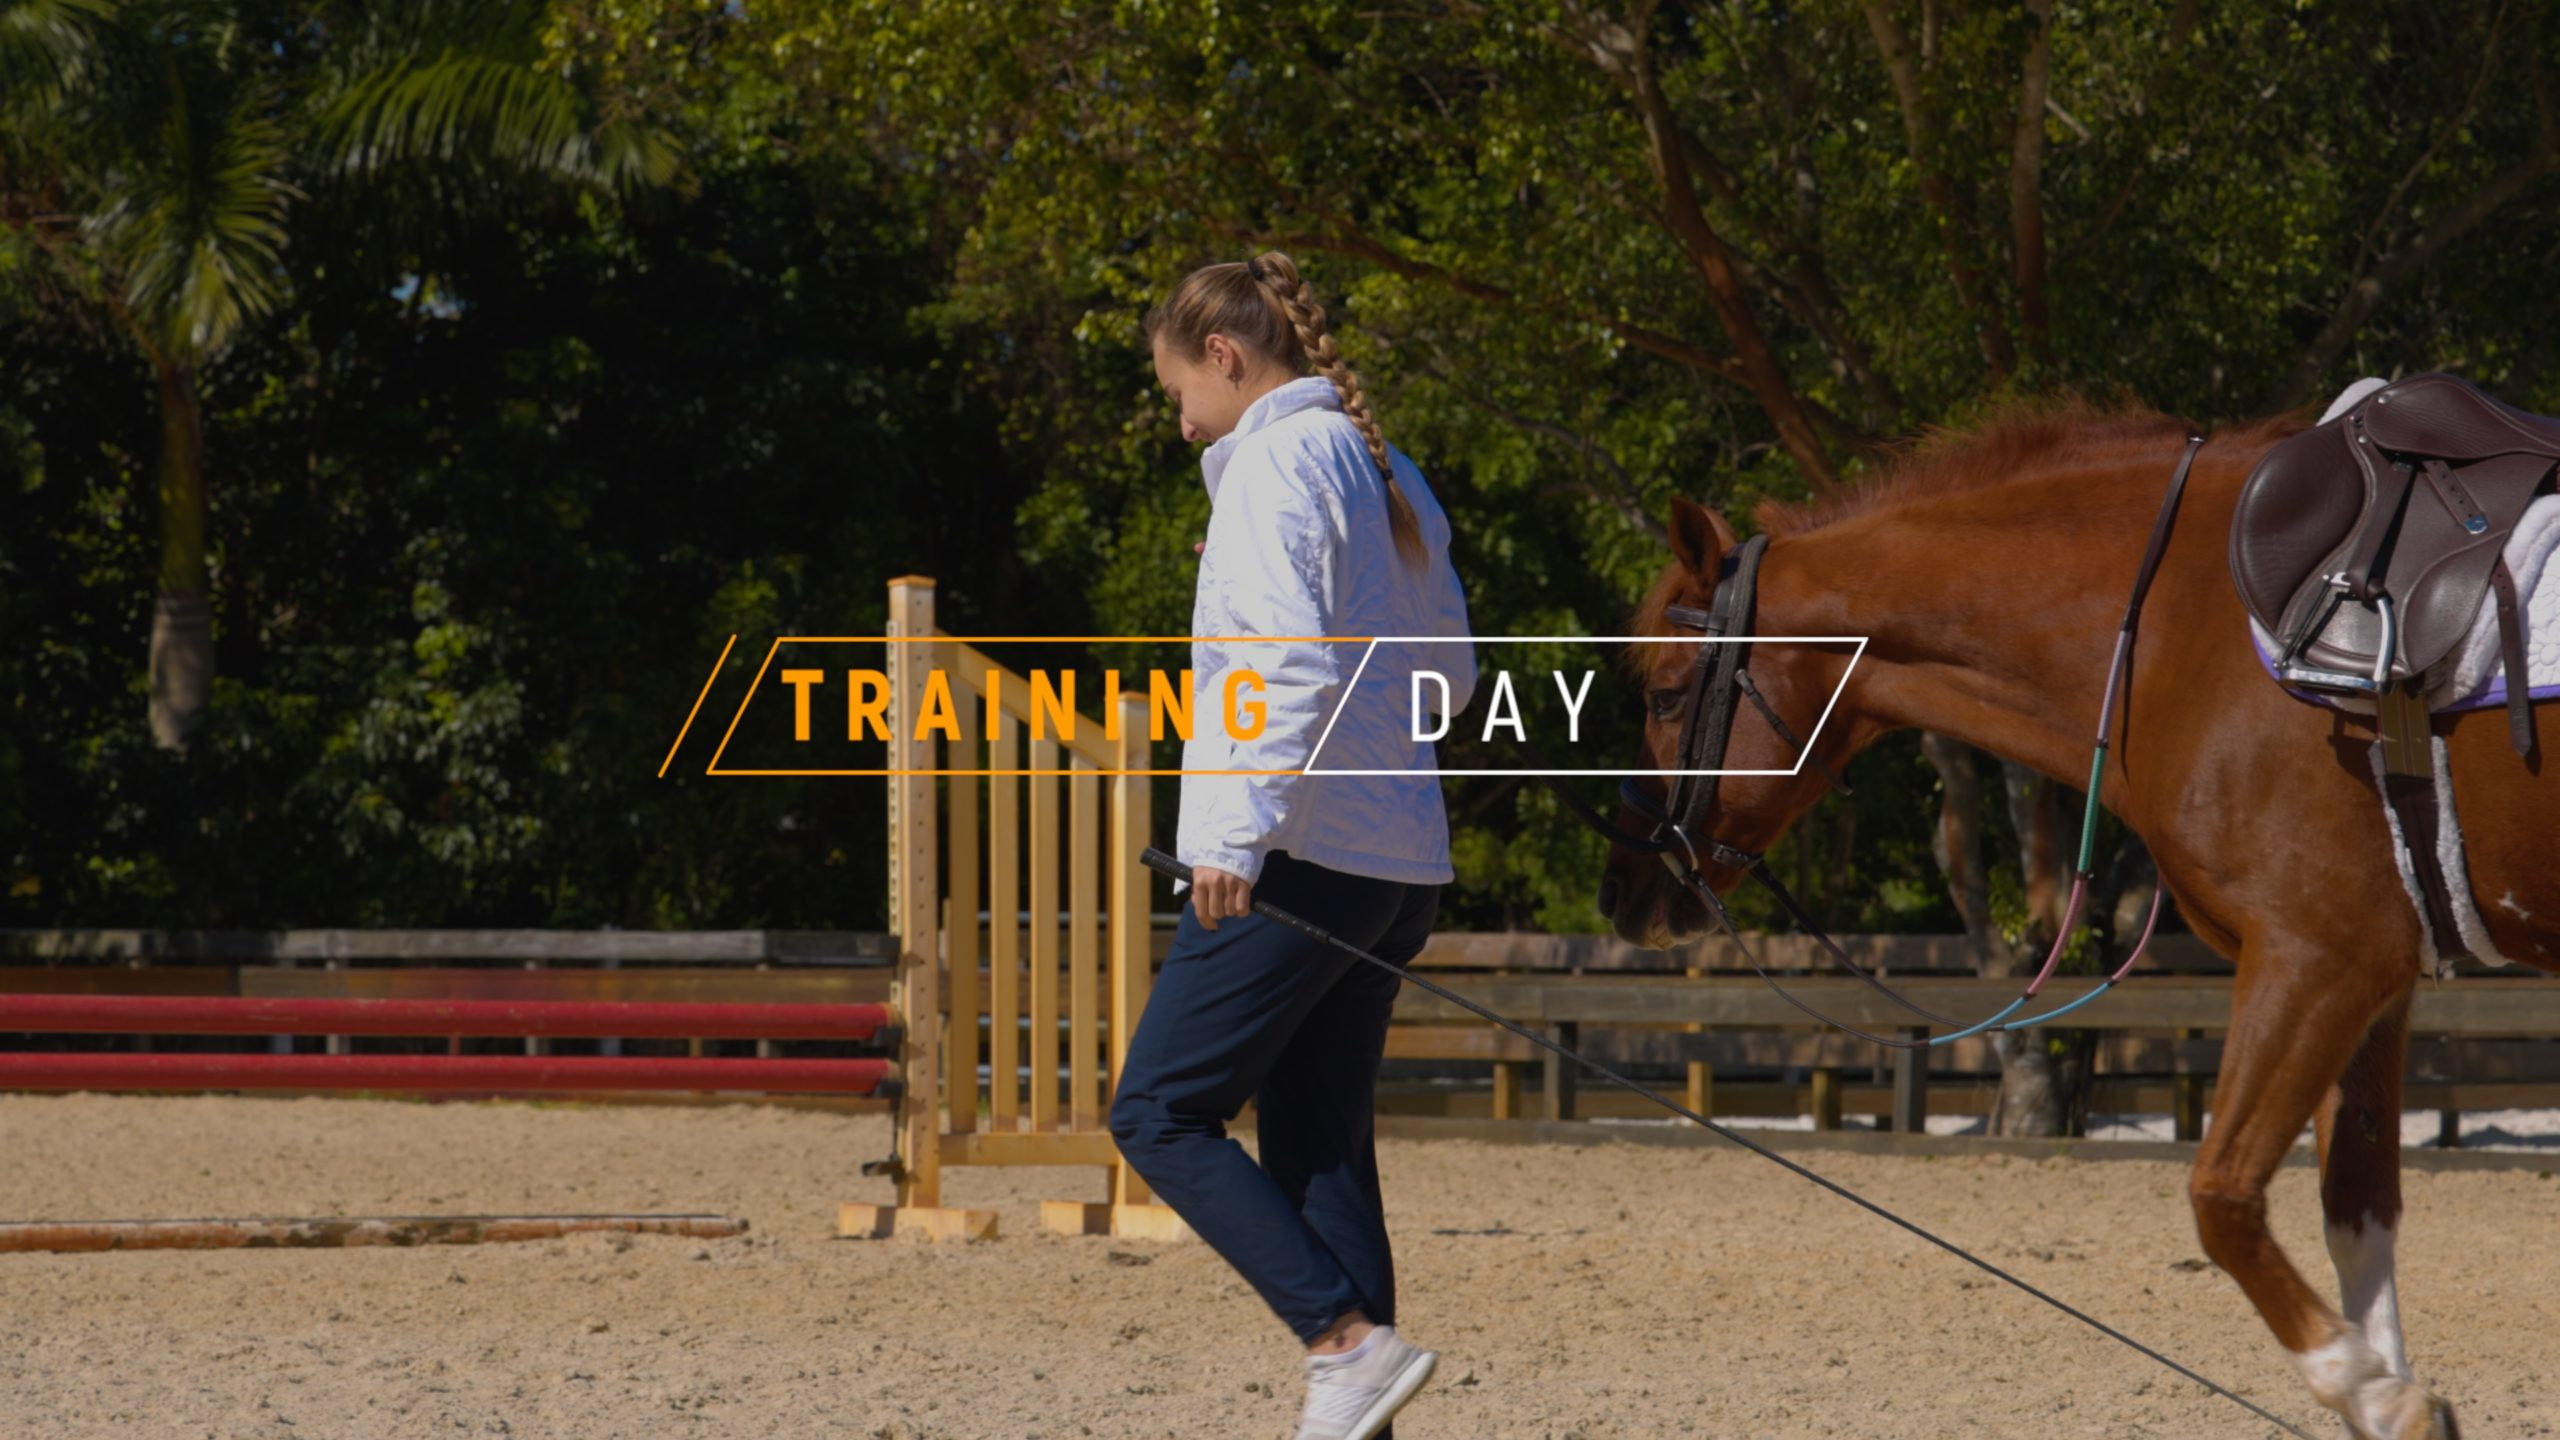 TRAINING DAY - EQUESTRIAN PENELOPE SHOT ON A (CANON EOS R5 120FPS)